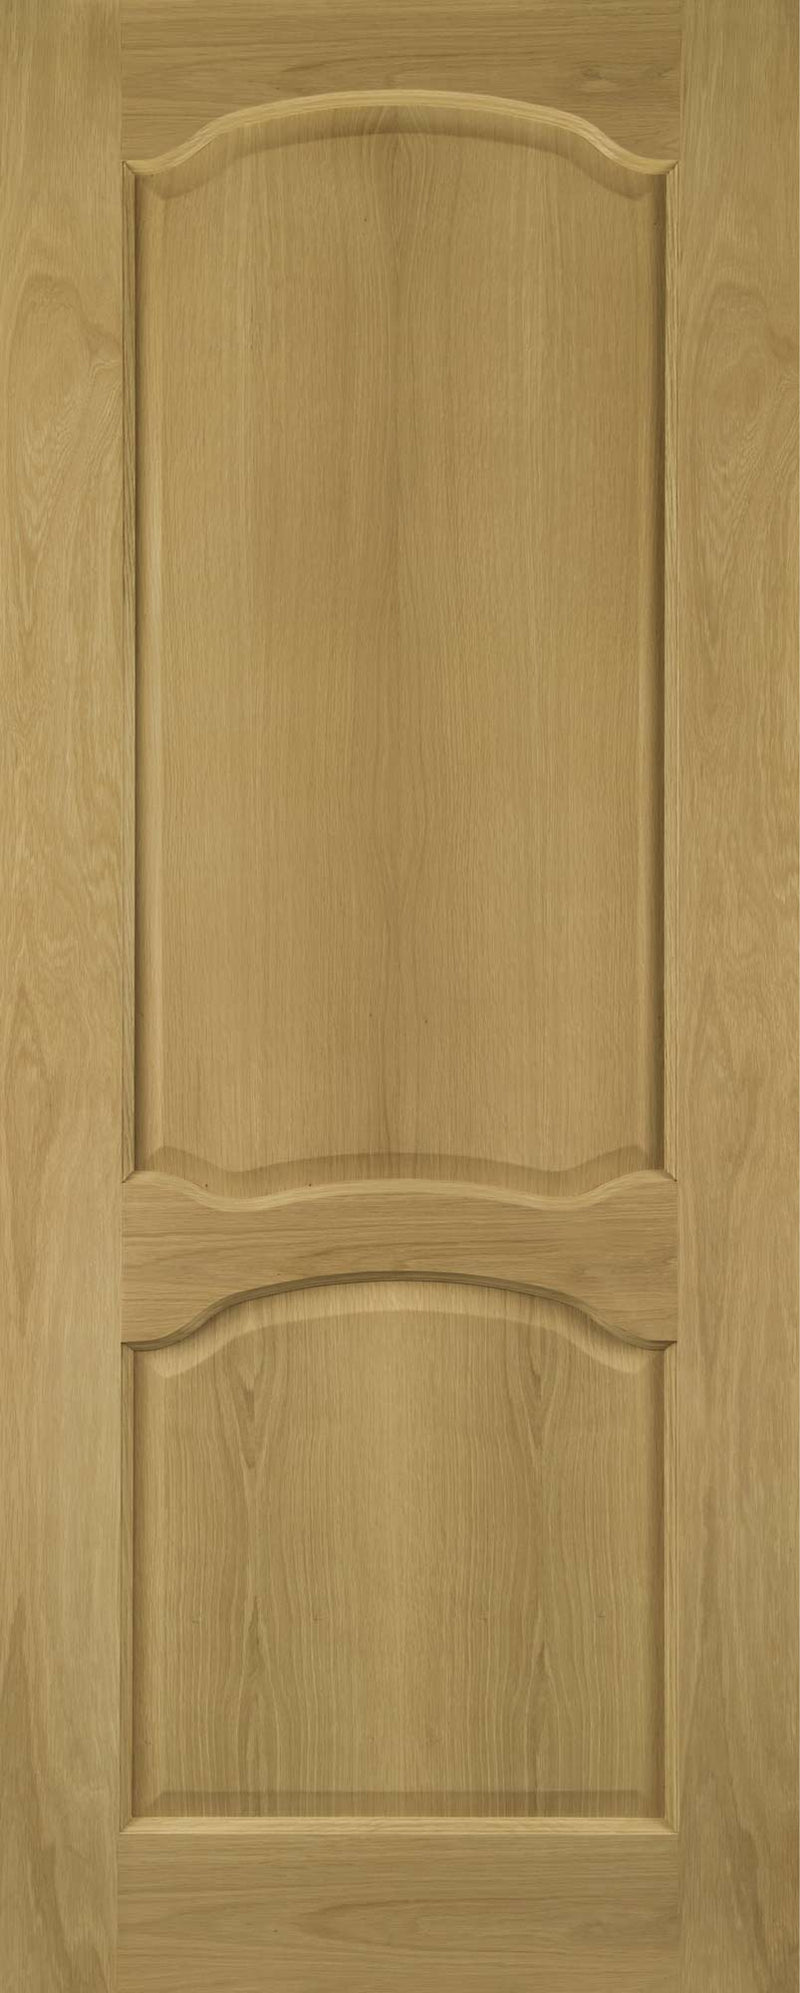 Deanta Oak Louis Fire Door